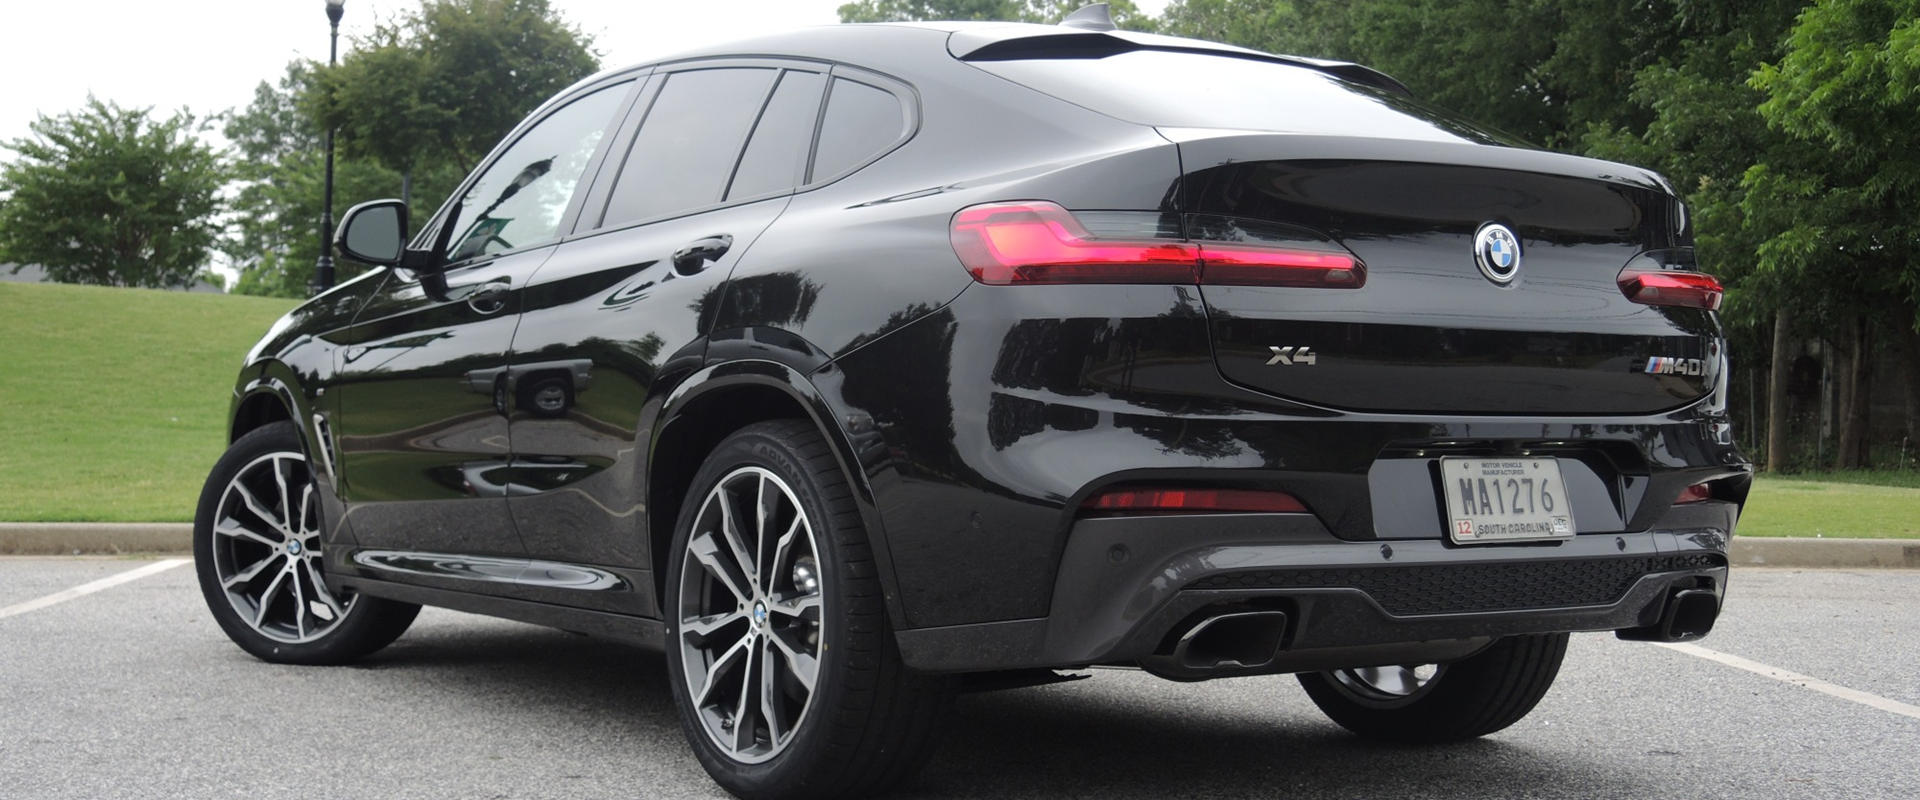 2019 bmw x4 first drive review beauty and beast become. Black Bedroom Furniture Sets. Home Design Ideas